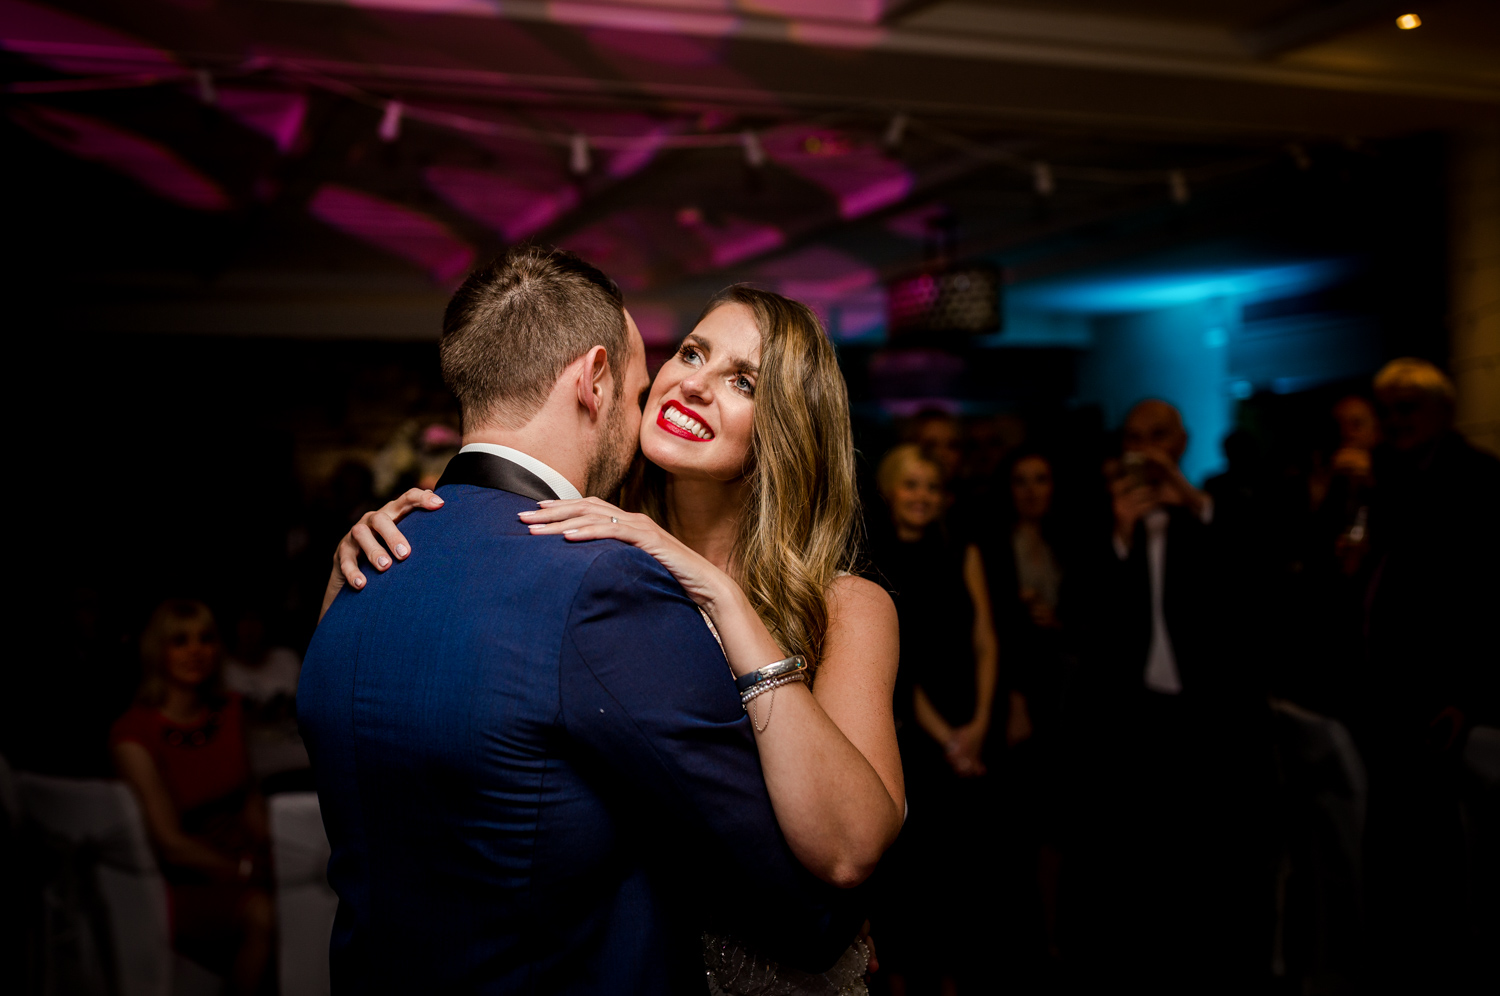 The first dance at Stanley House Hotel